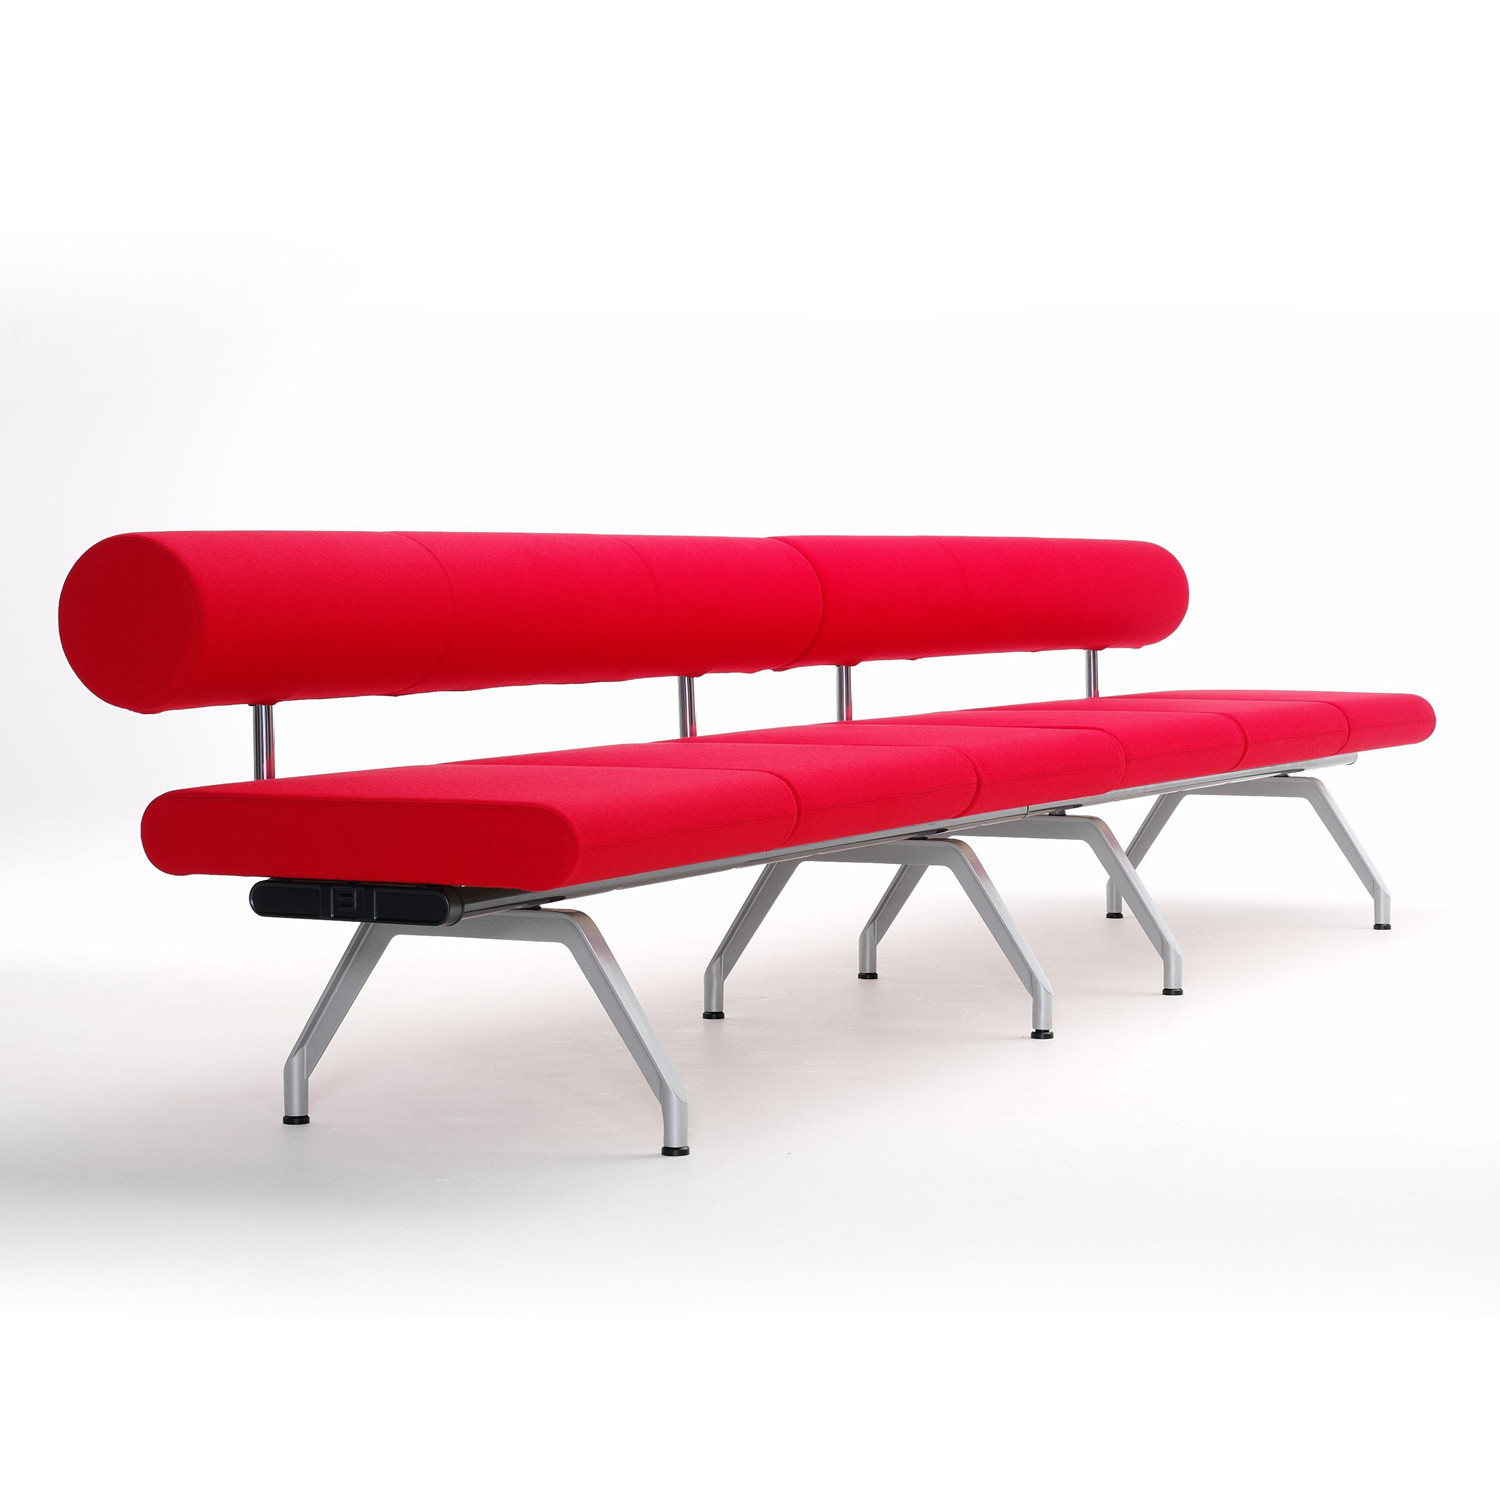 EJ 900 Pipeline Soft Seating